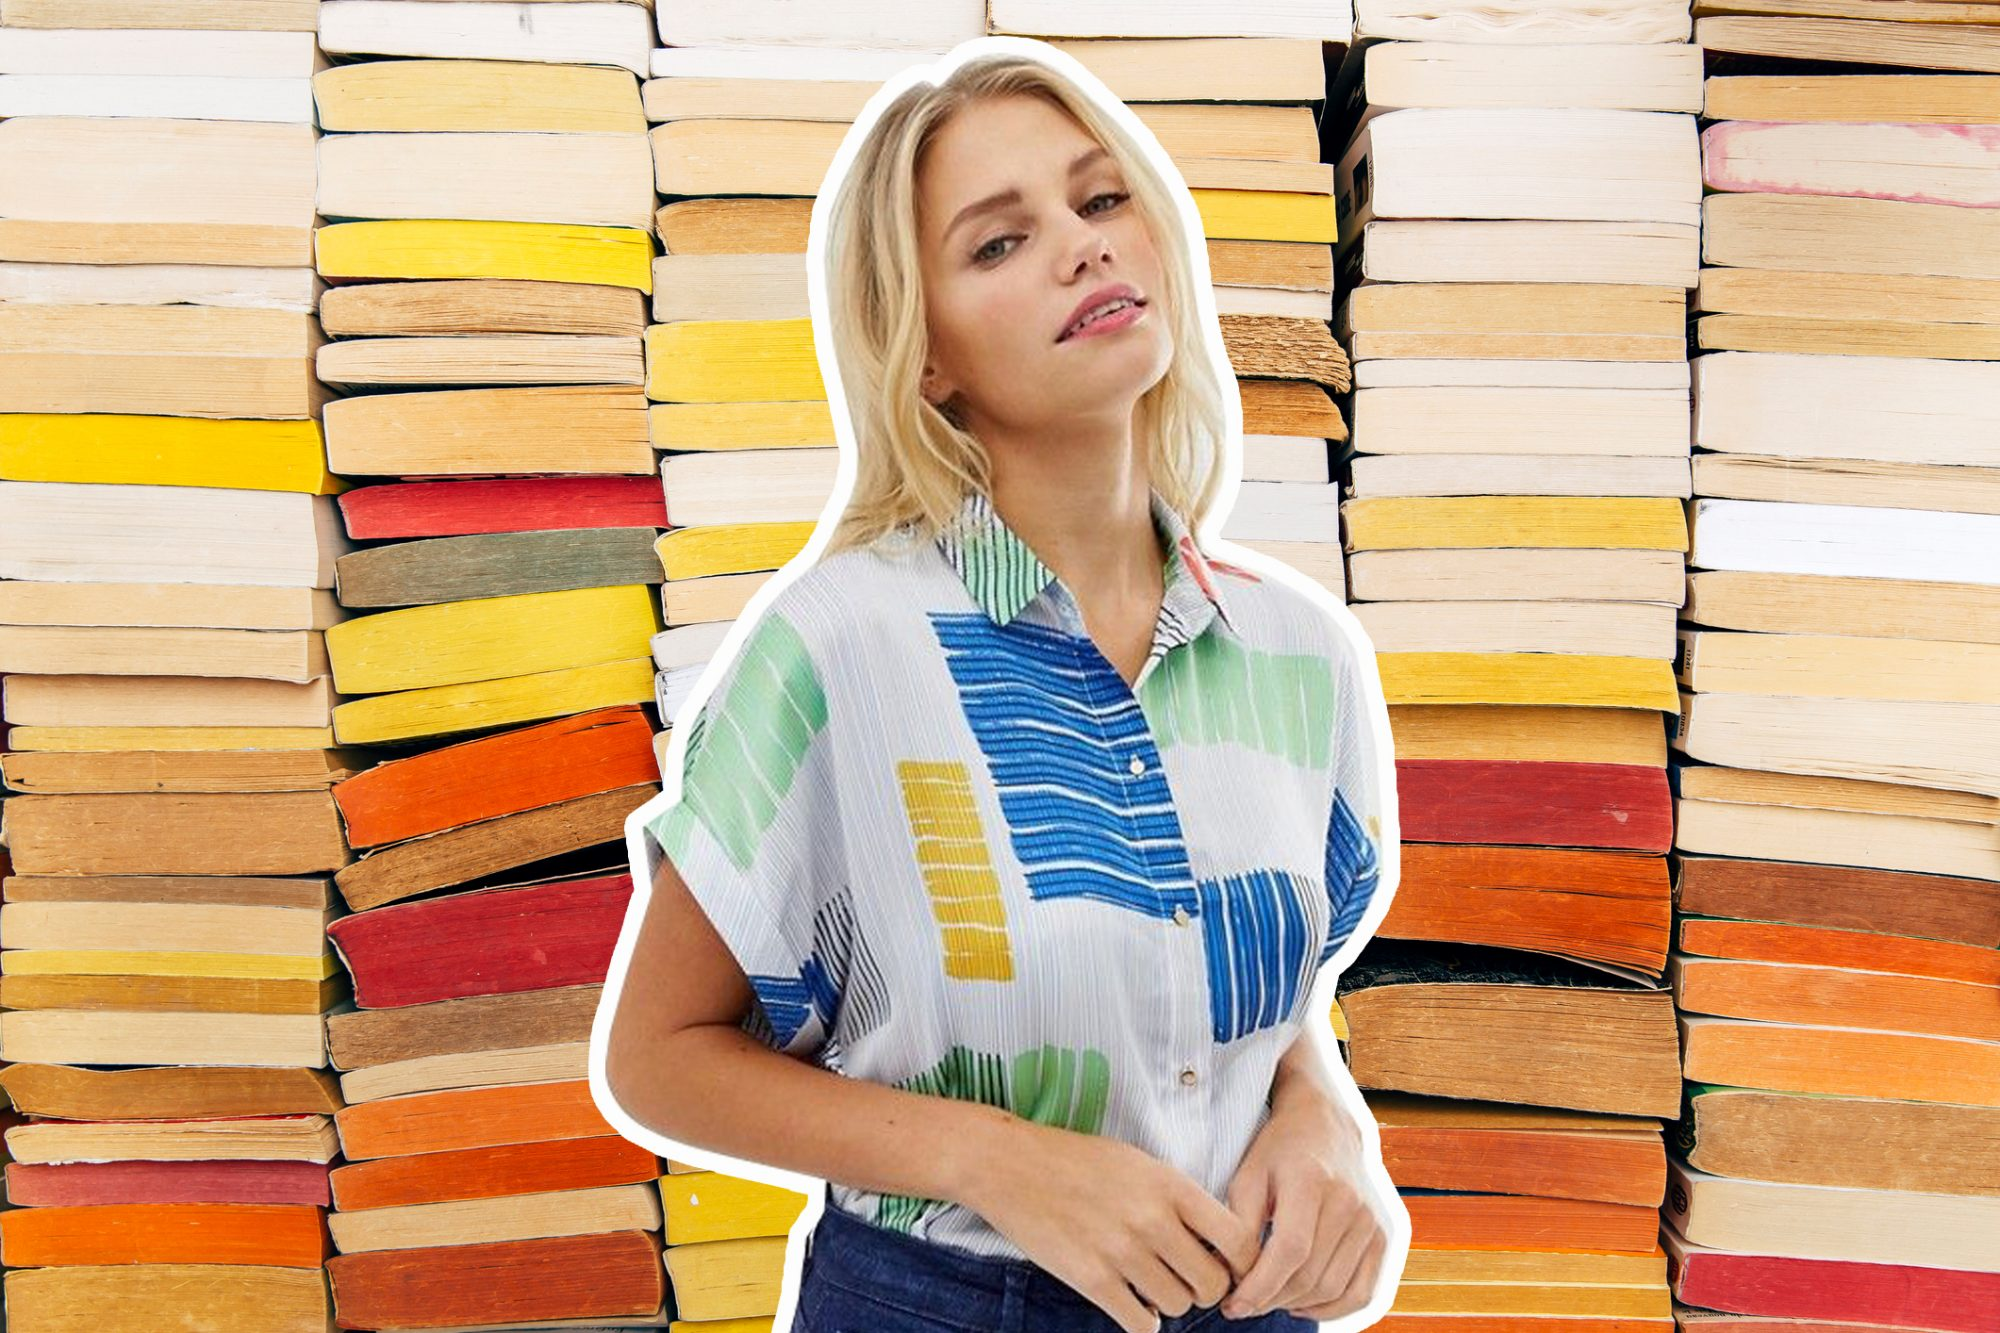 woman dressed like literary character in front of stacks of books